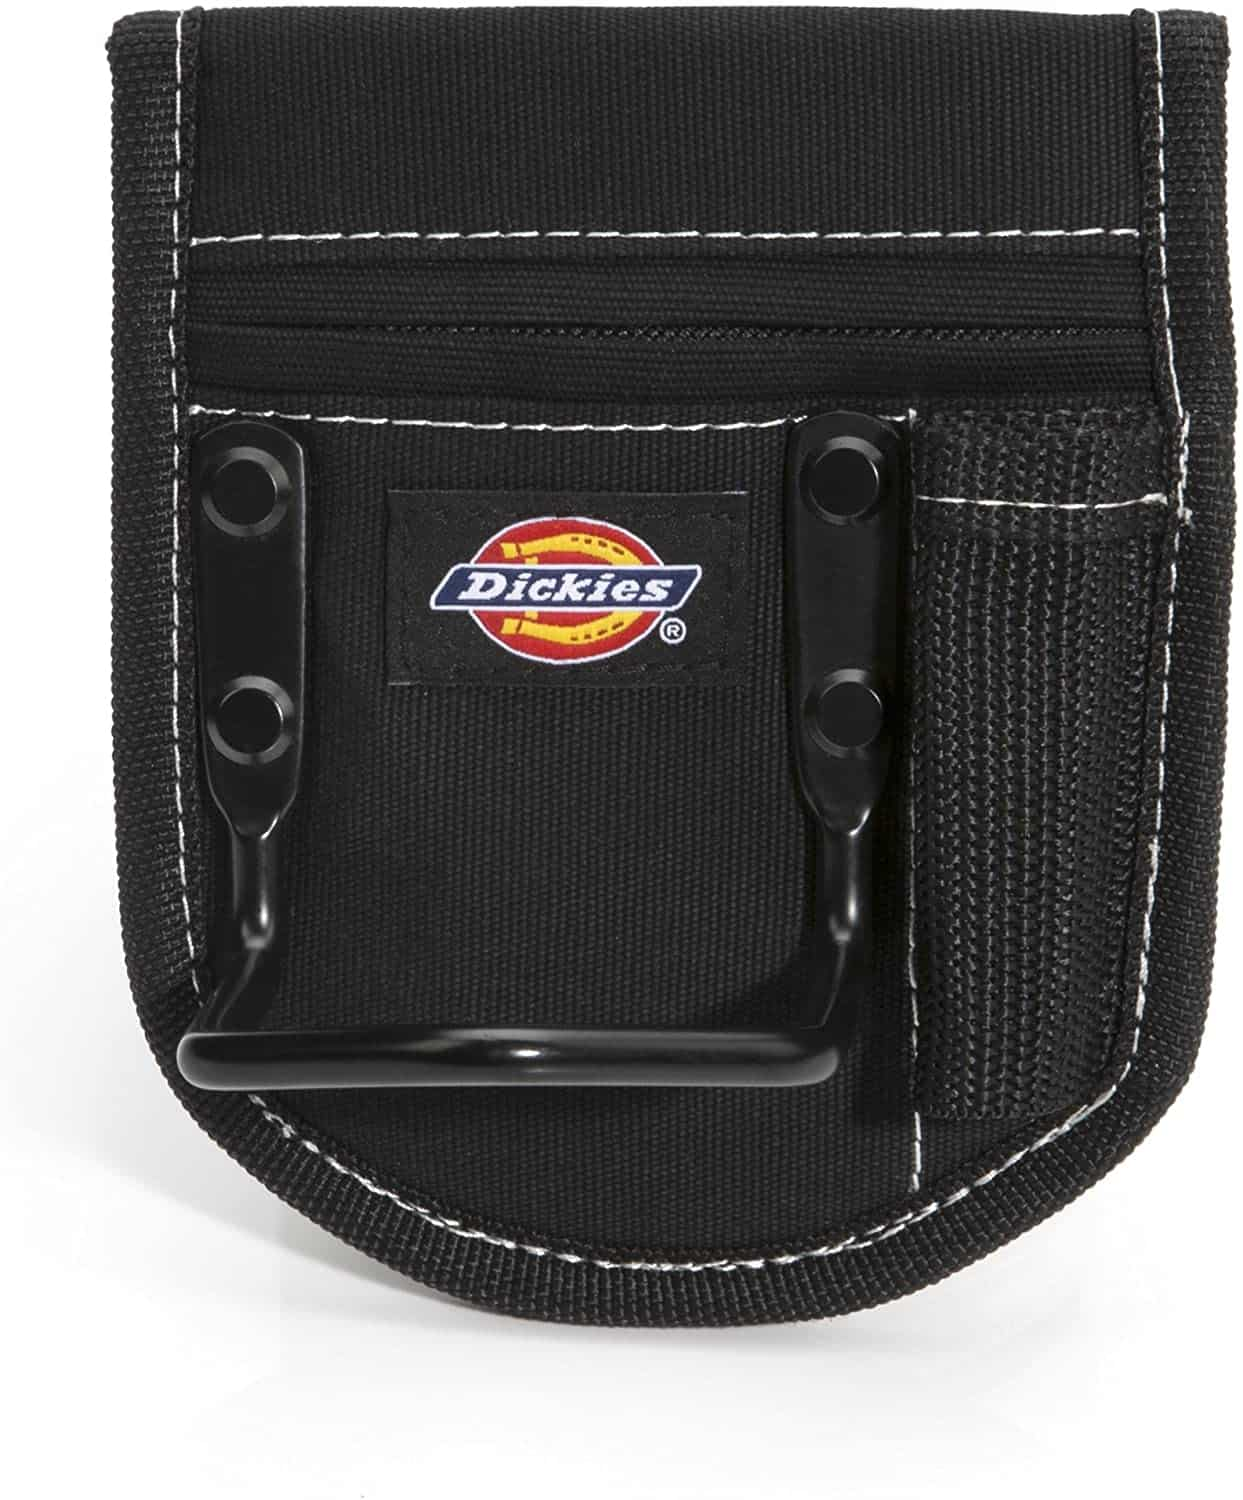 Best hammer holder for wider belts- Dickies Work Gear 57071 2-Compartment